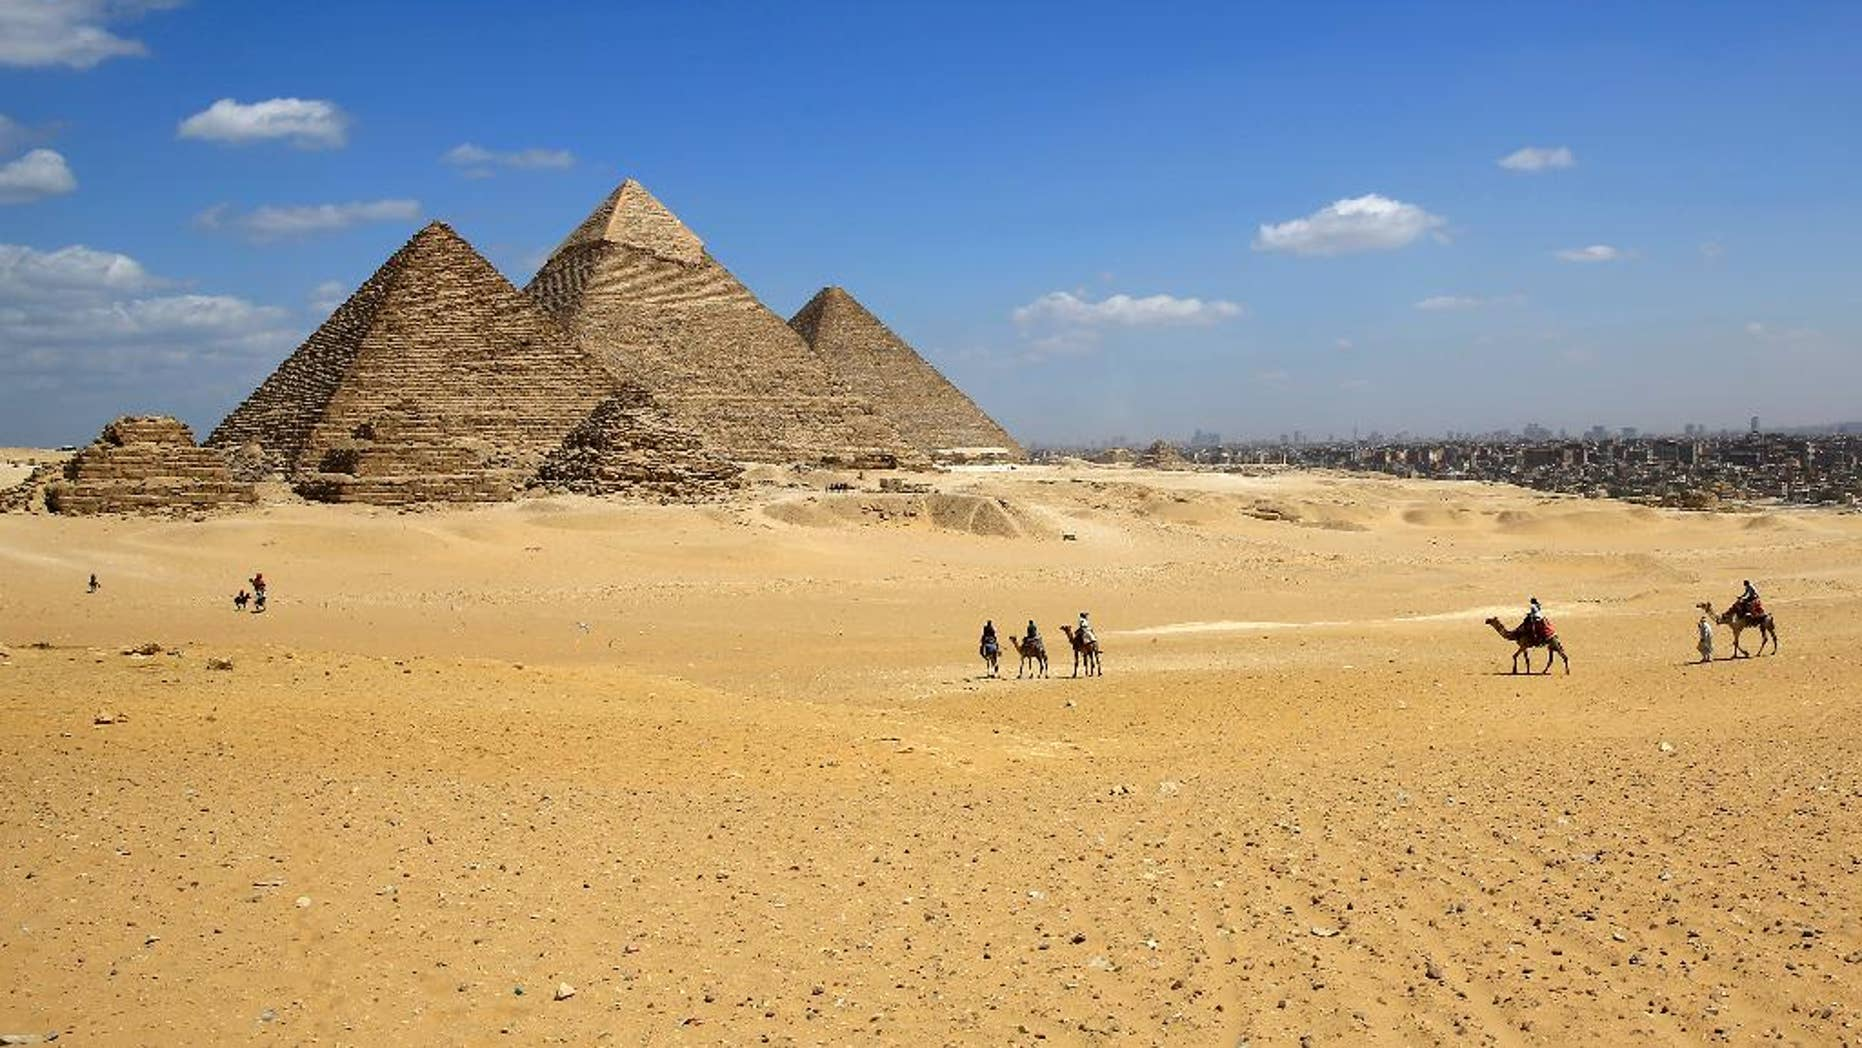 FILE - In this Thursday, April 9, 2015, file photo, tourists ride camels at the historical site of the Giza Pyramids in Giza, near Cairo, Egypt. Gunmen on a speeding motorcycle opened fire outside the plateau of the famed Giza Pyramids on the outskirts of Cairo early Wednesday, killing two policemen, in a rare attack near the country's tourist attractions, Egypt's state news agency and security officials said.  (AP Photo/Hassan Ammar)